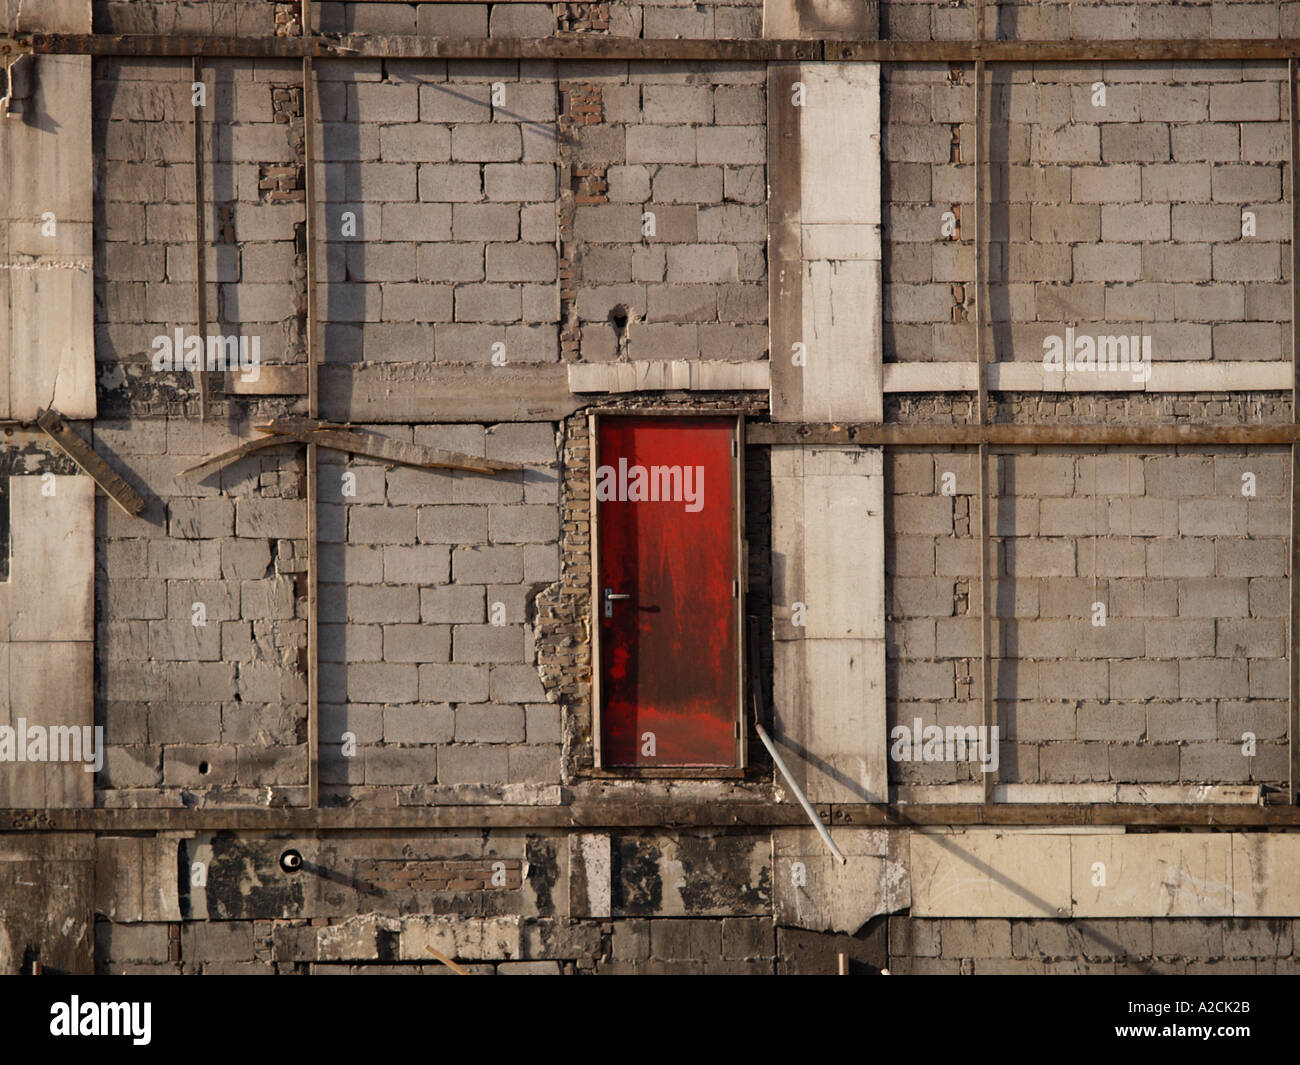 Grey wall with red door in building that is being demolished - Stock Image